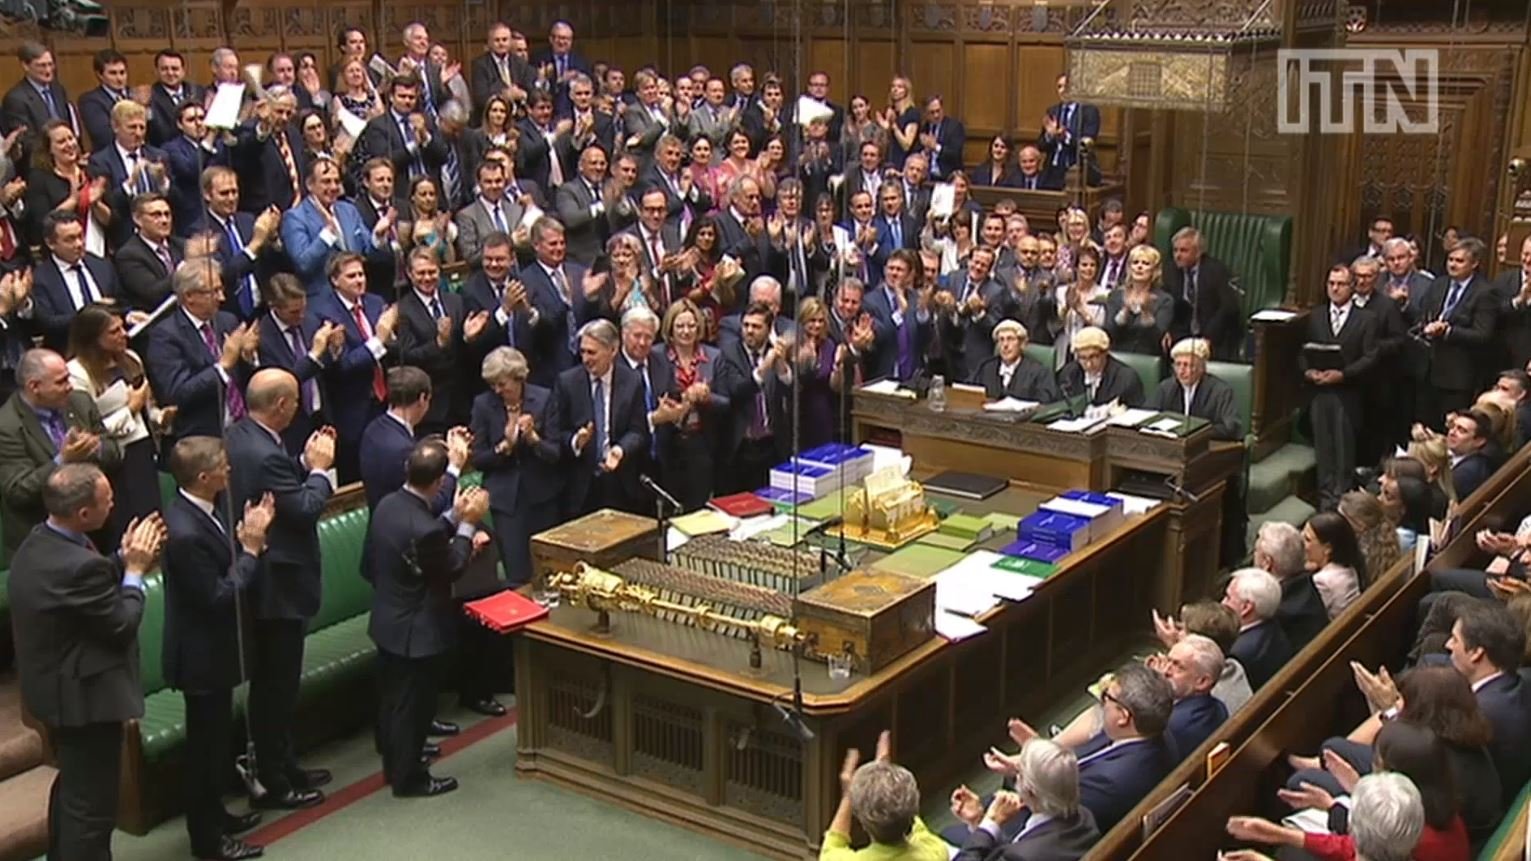 David Cameron given standing ovation after final Prime Minister's Questions